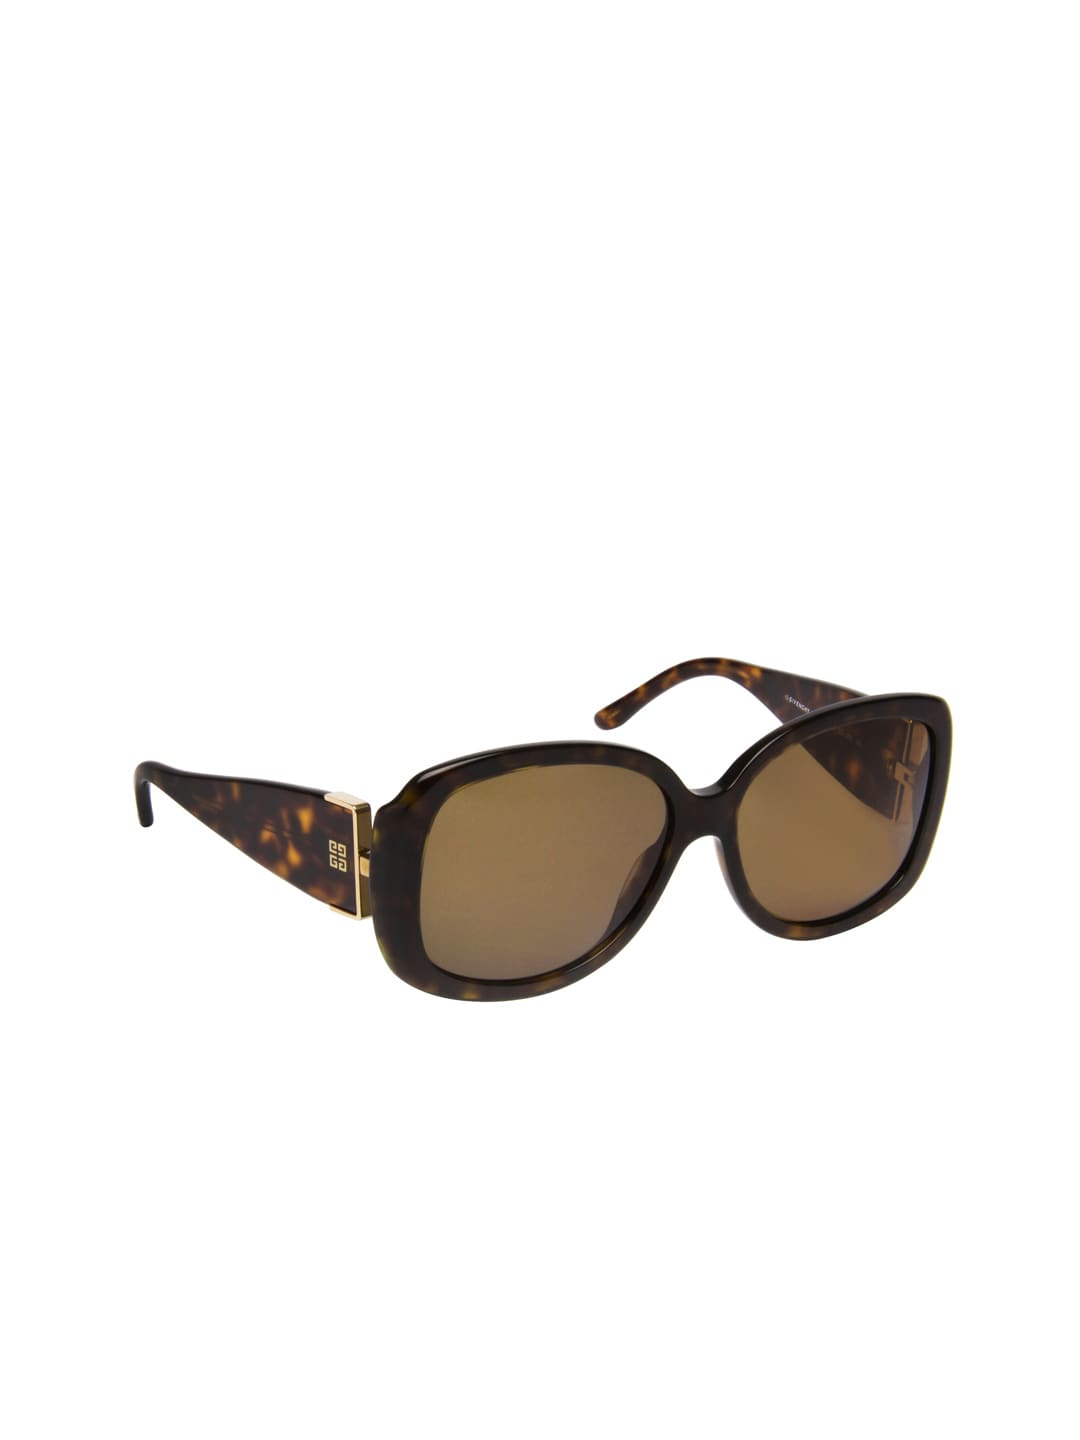 Givenchy Givenchy Women Sunglasses SGV-690 COL-0722 (Transperant)